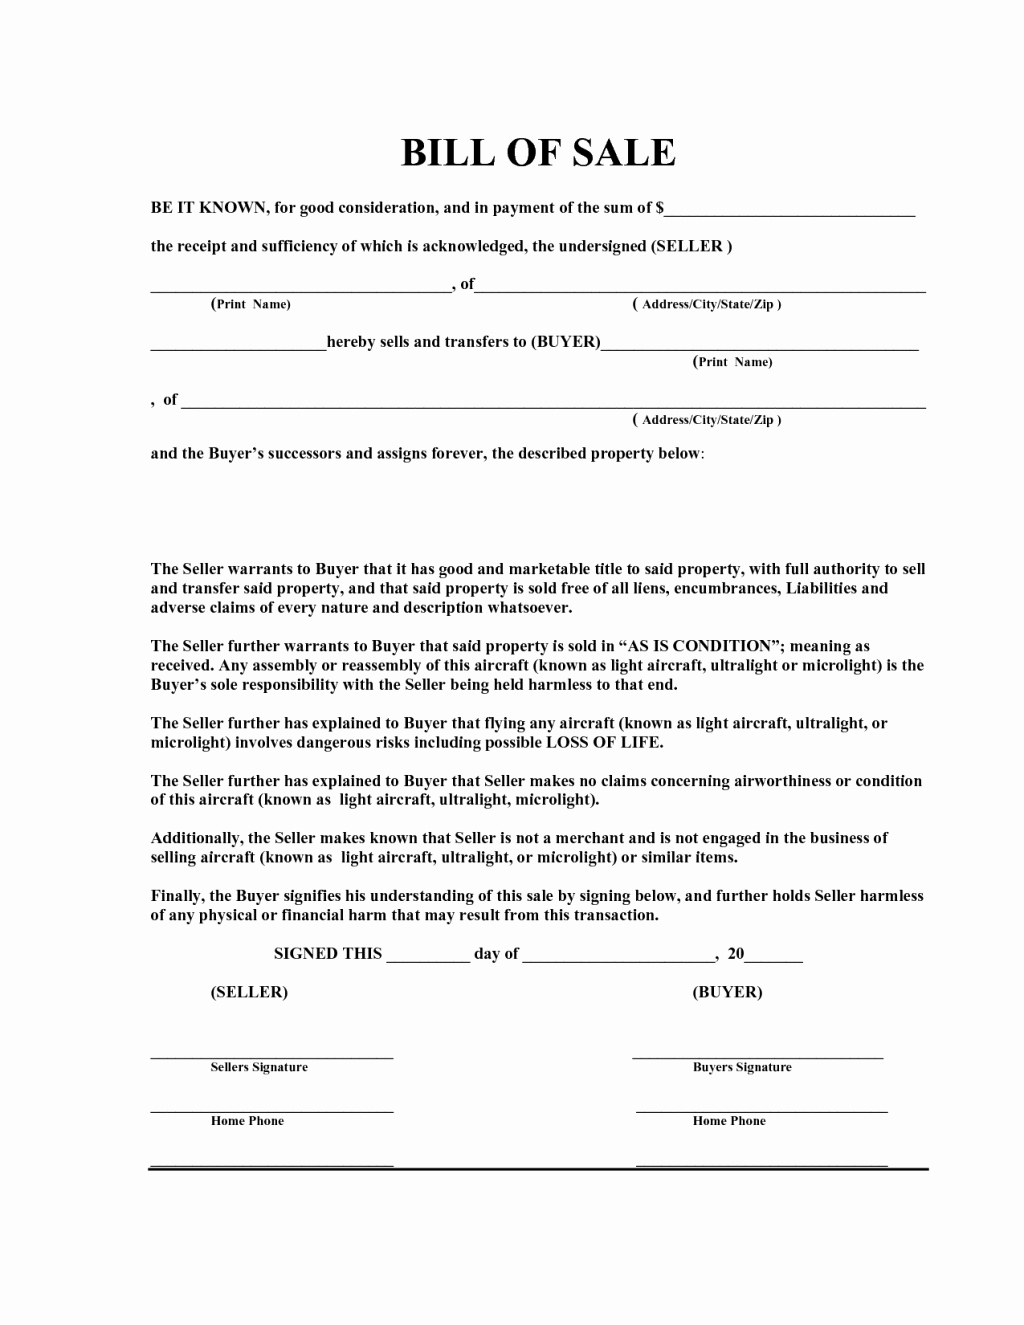 Bill Of Sale Printable Version Unique Bill Sale for Land Simple Car Anuvratinfo